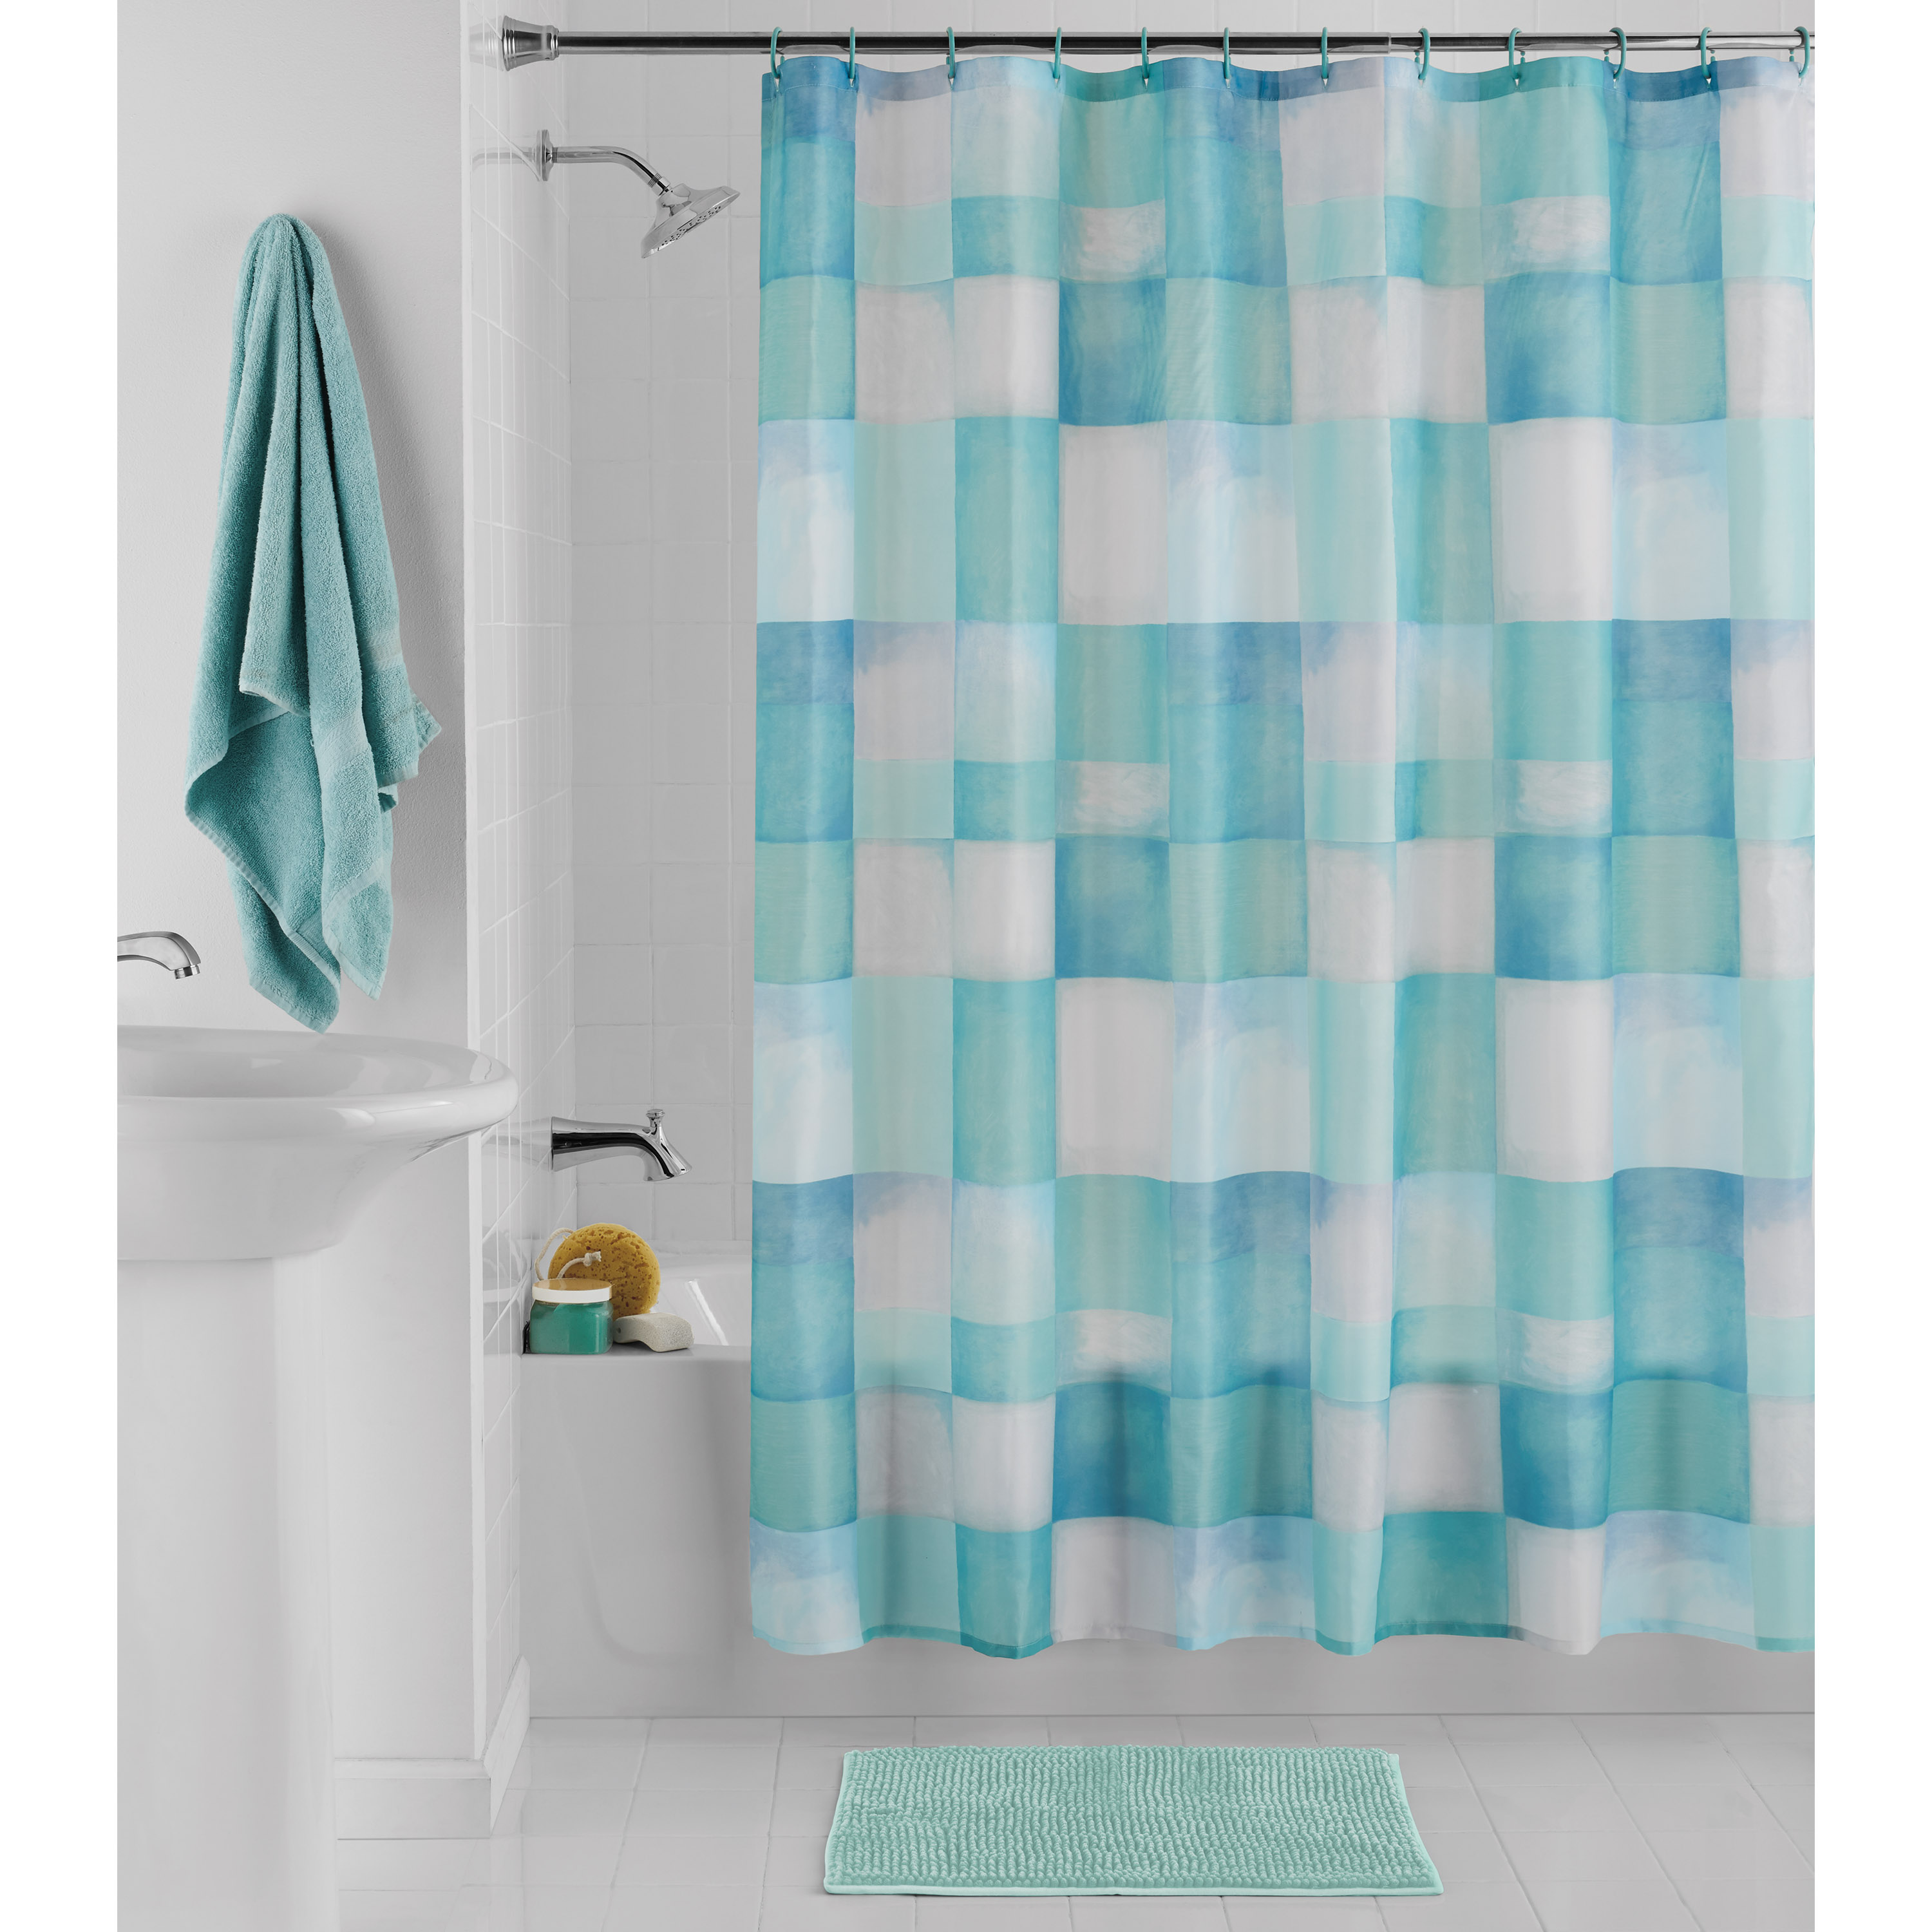 mainstays blue square 14pc set with printed fabric shower curtain 70 x 72 polyester rug 17 x 24 and 12 plastic hooks